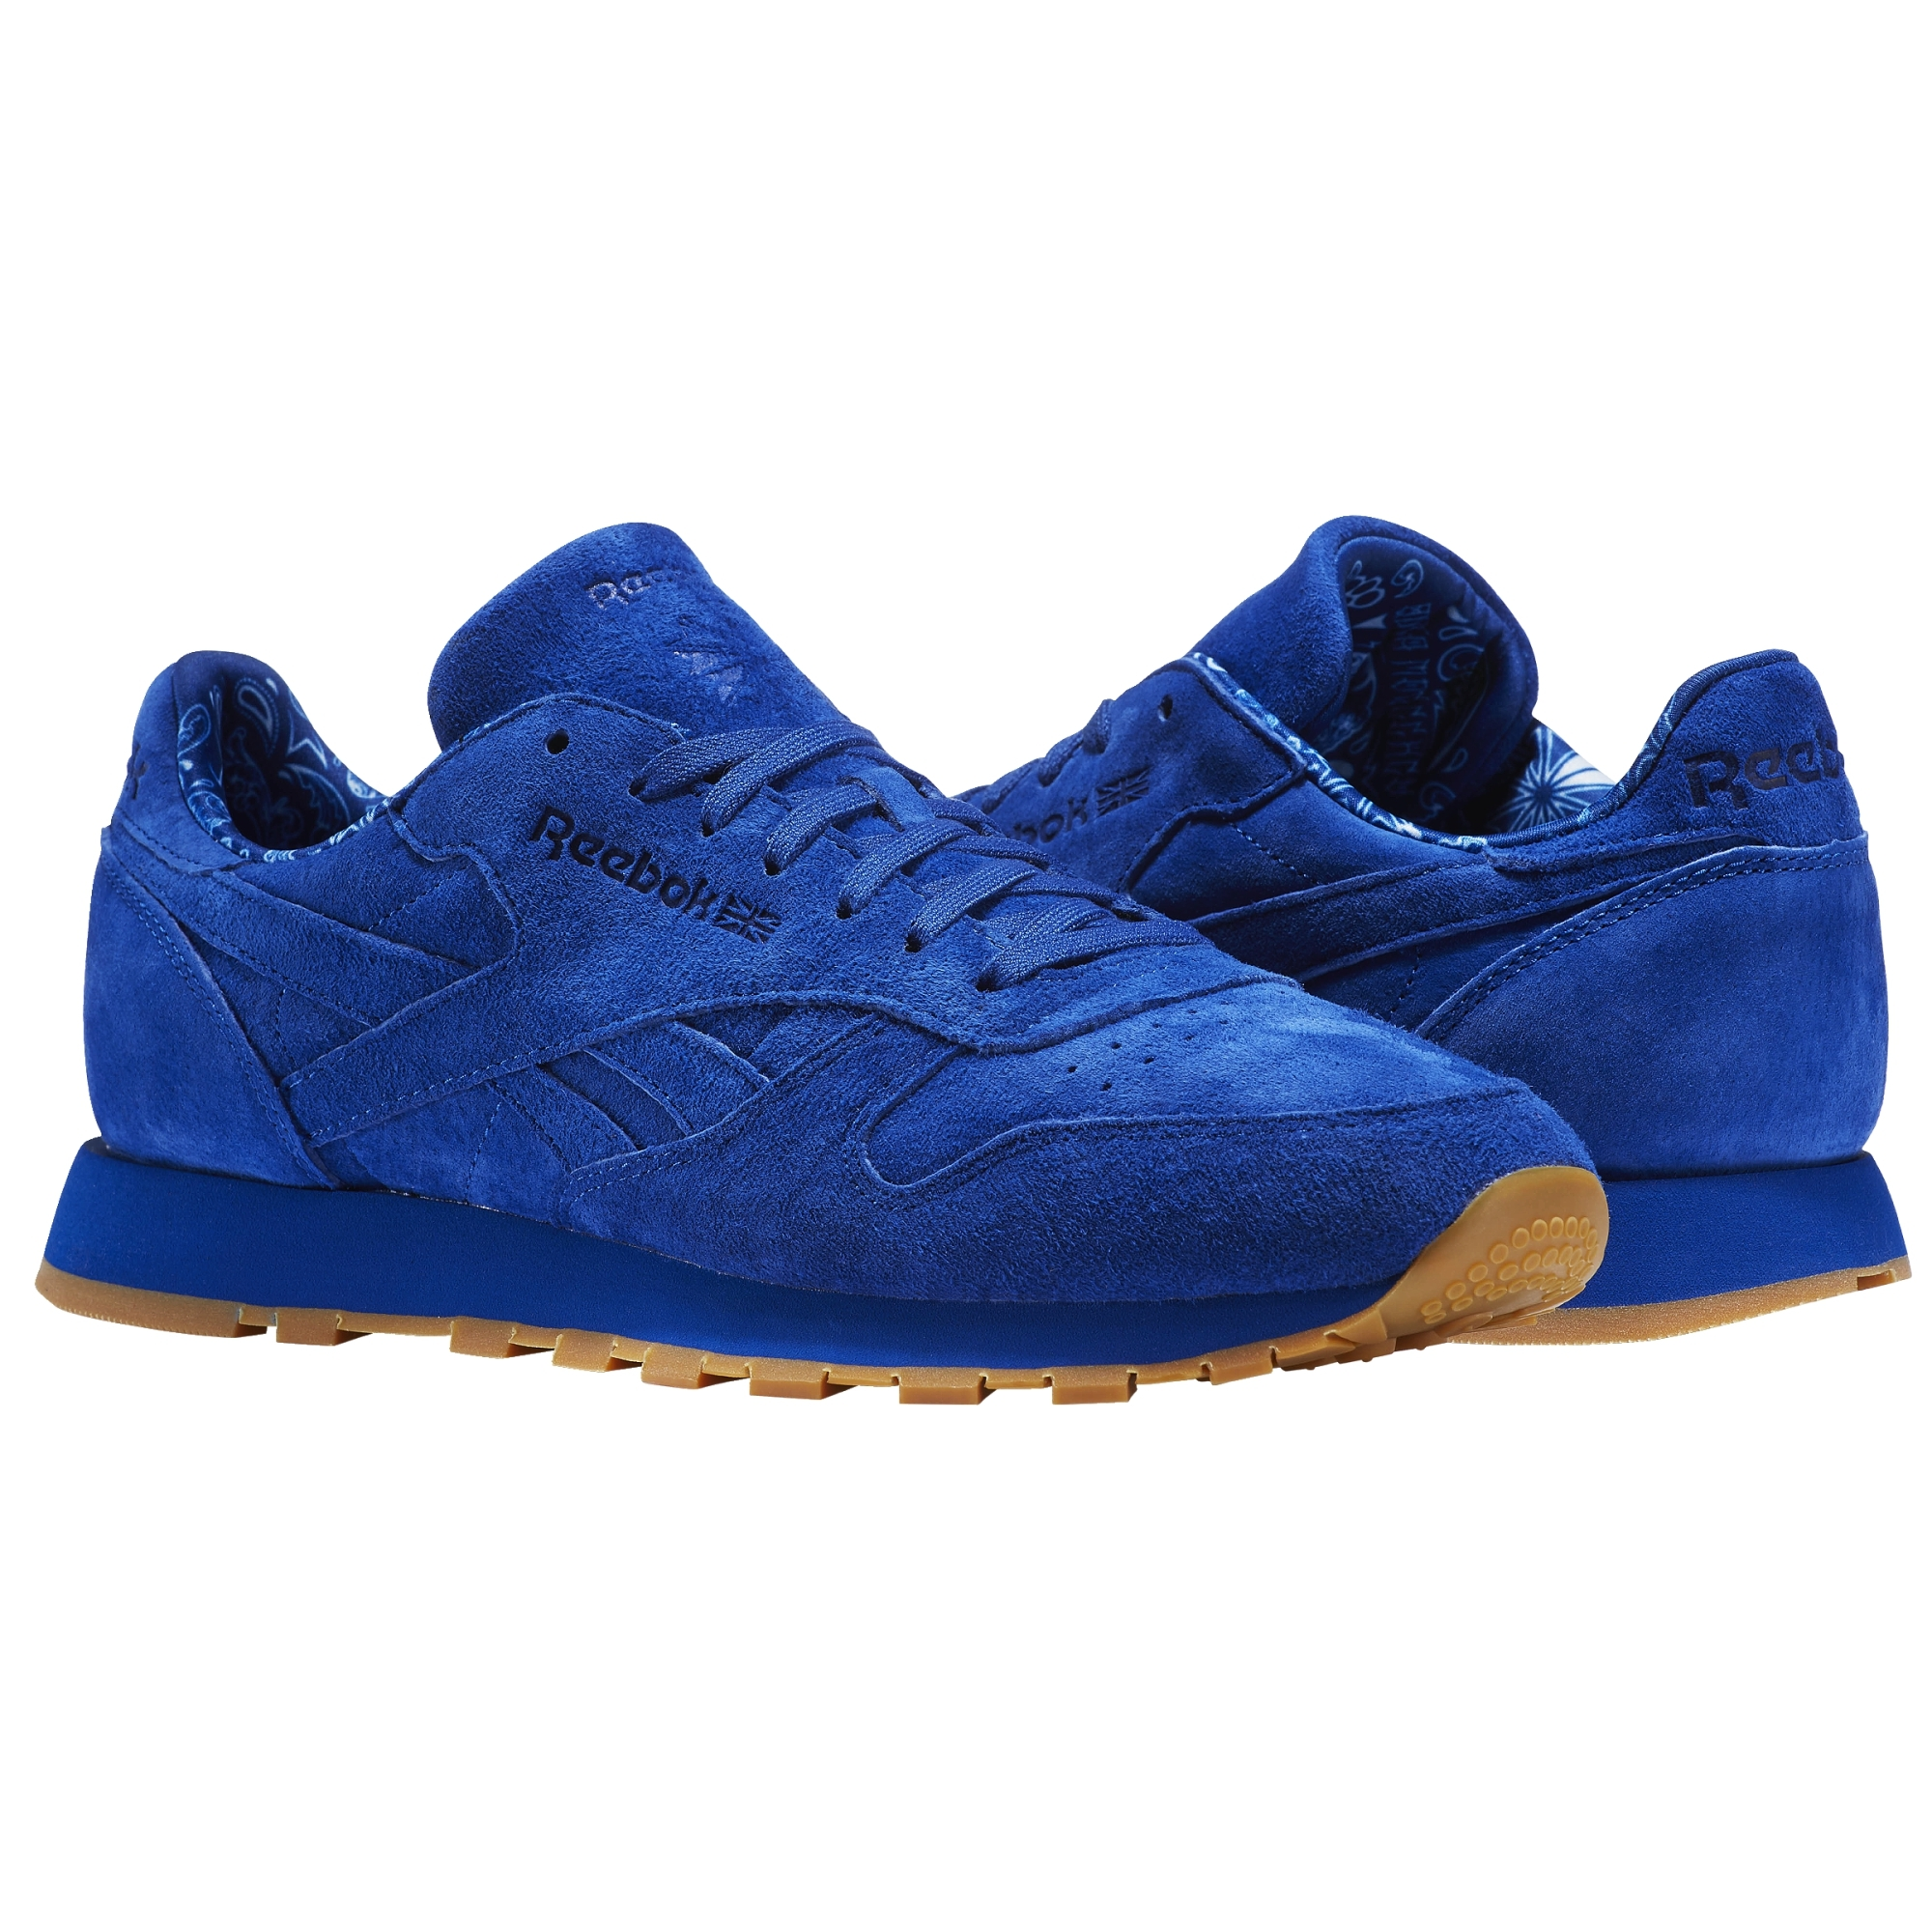 Reebok Classic Leather Paisley Pack BD3233